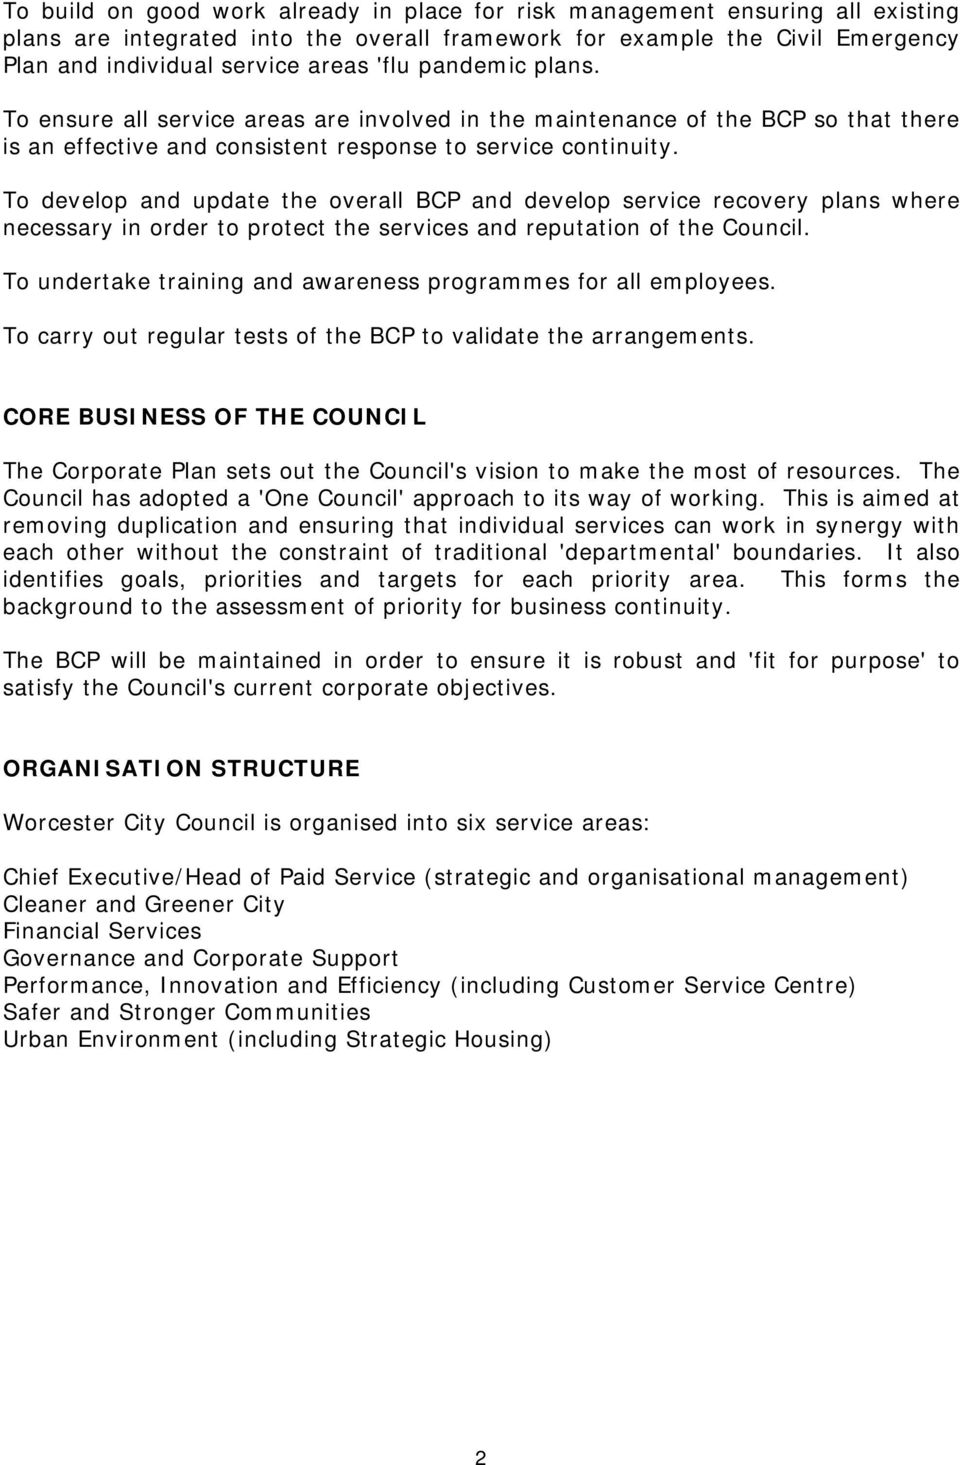 To develop and update the overall BCP and develop service recovery plans where necessary in order to protect the services and reputation of the Council.